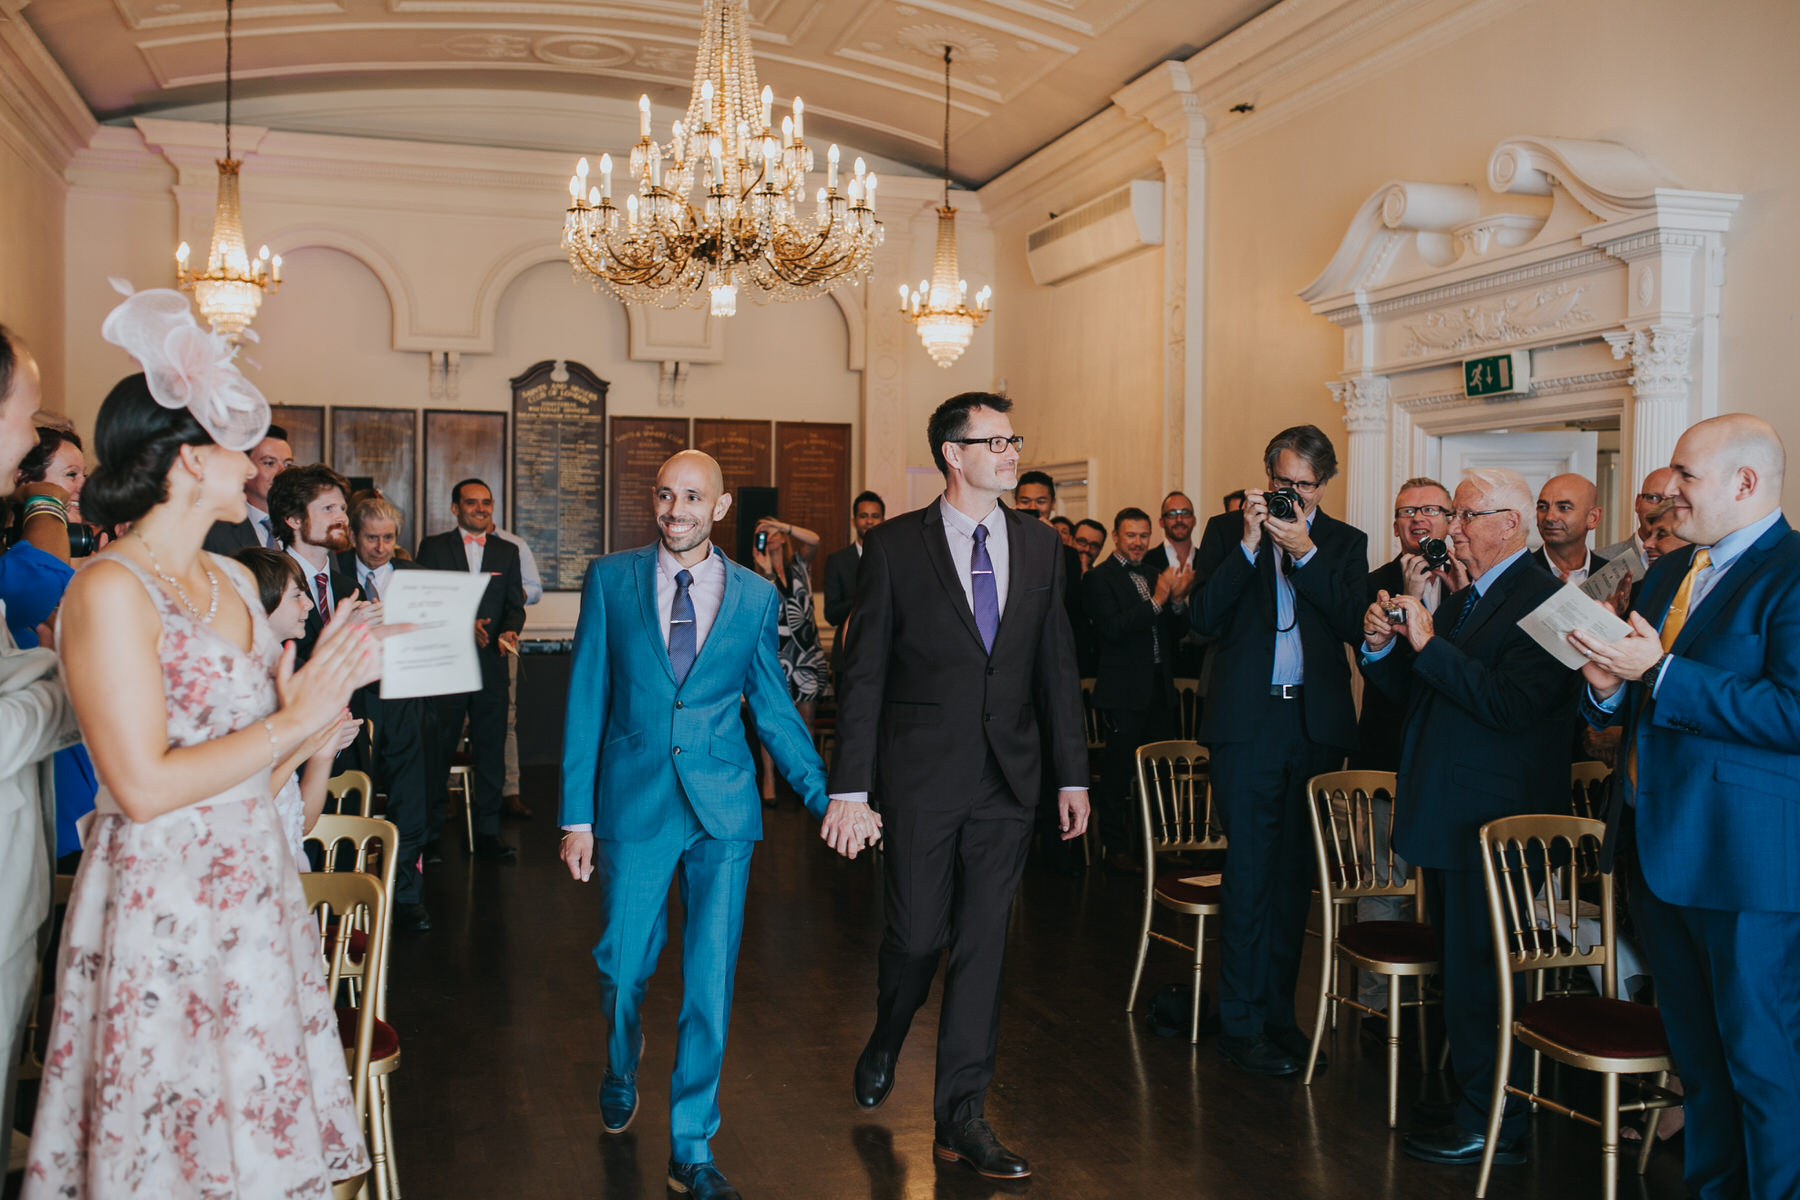 68 two grooms enter same sex wedding ceremony hand in hand.jpg